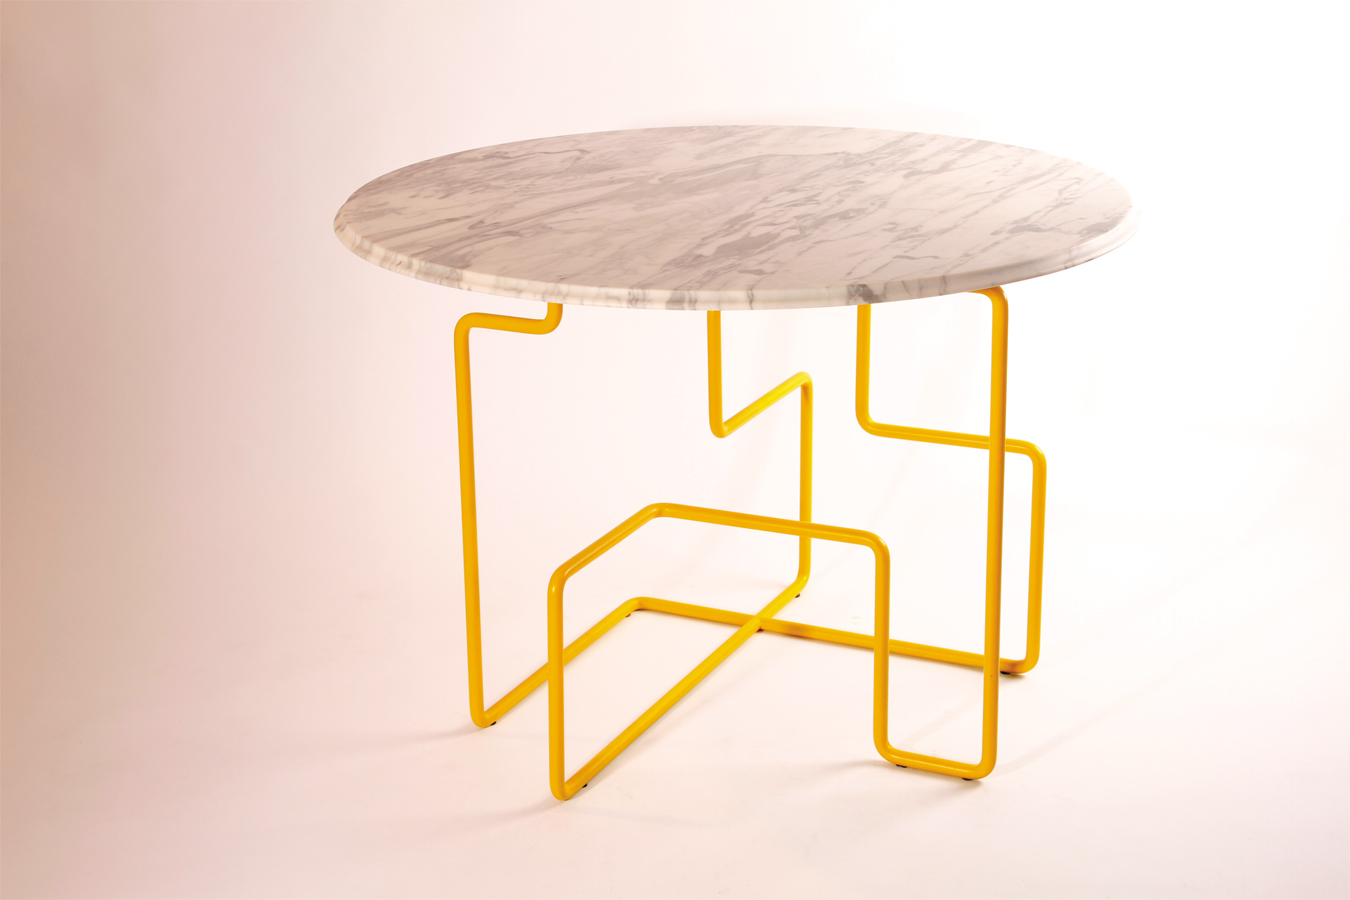 KST Dining Table by Livius H228rer and Ada Ihmels Design Milk : marble top yellow base table 1 from design-milk.com size 1350 x 900 jpeg 370kB